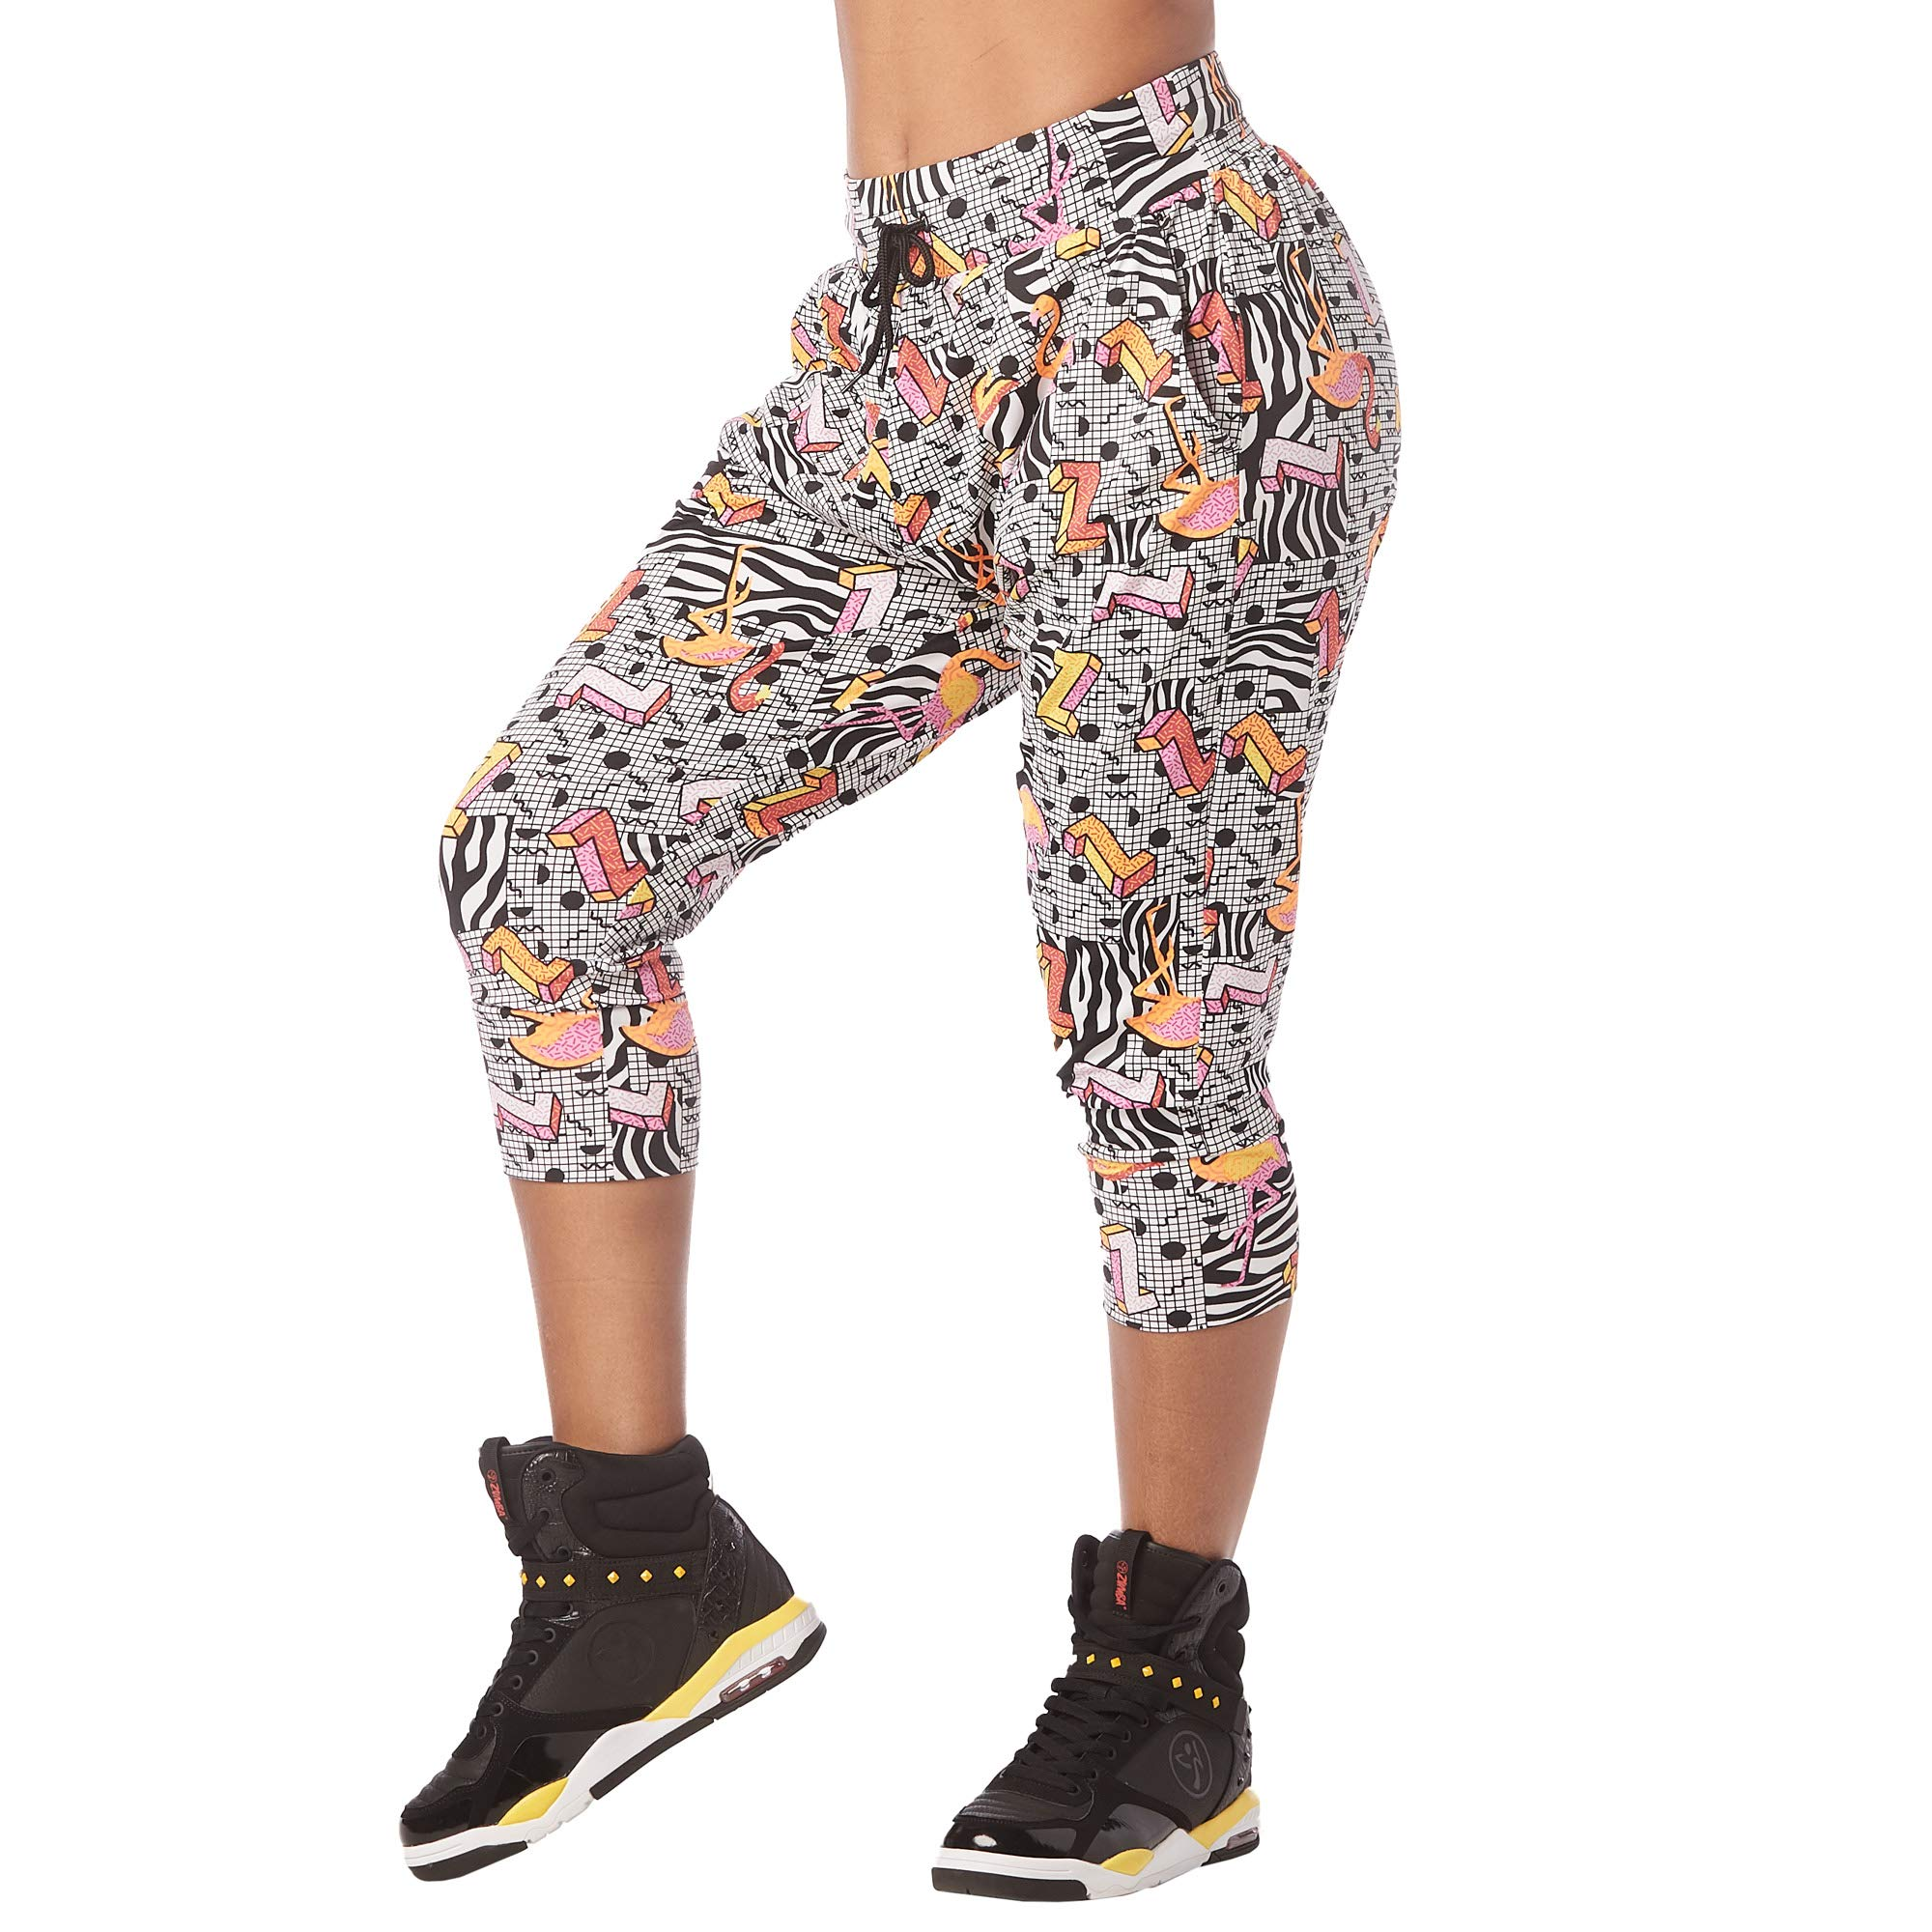 Zumba Women's Soft Breathable Activewear Harem Capri Workout Pants, Wear it Out White, X-Small